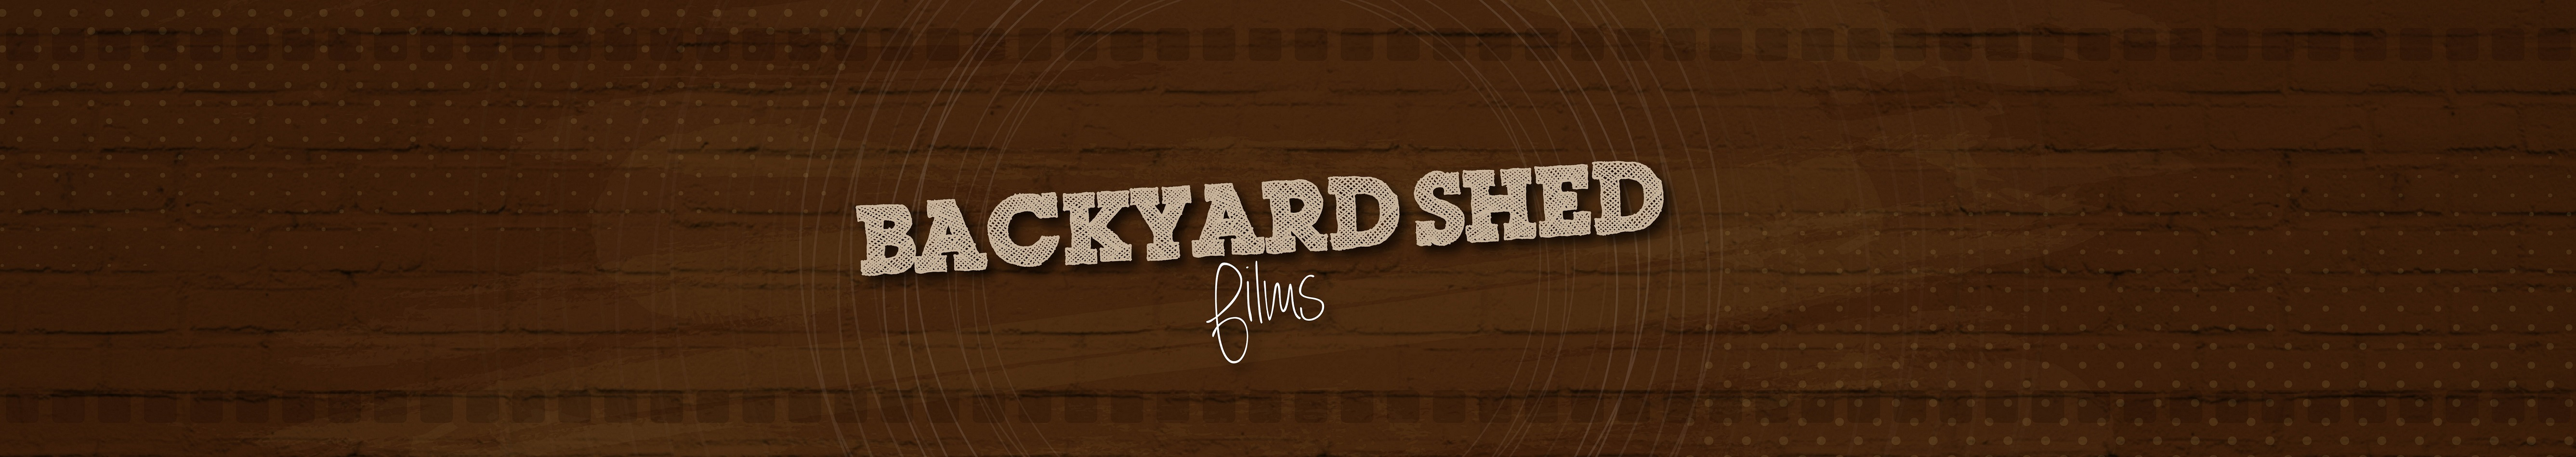 Home Page No Header | Backyard Shed Films